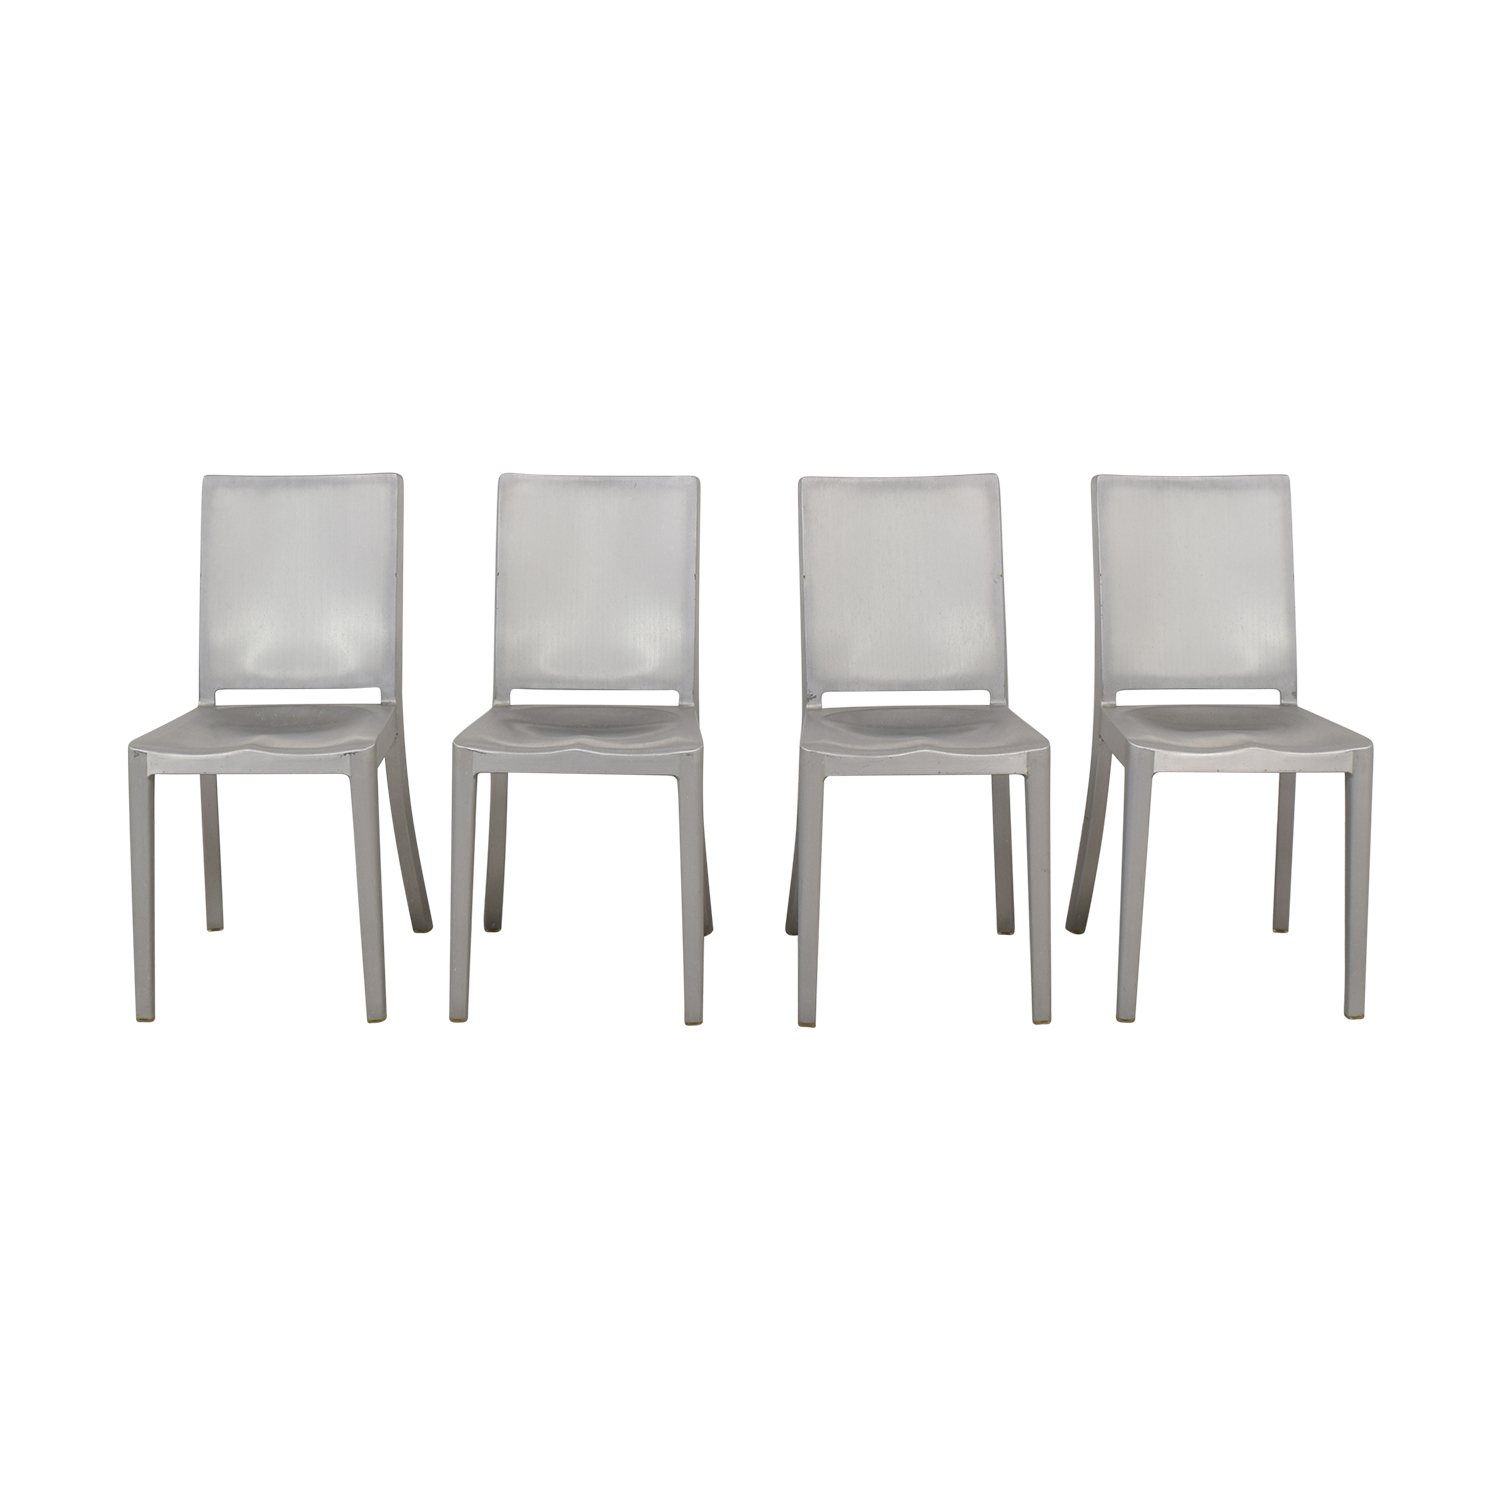 Emeco Emeco by Philippe Starck Hudson Chairs nyc